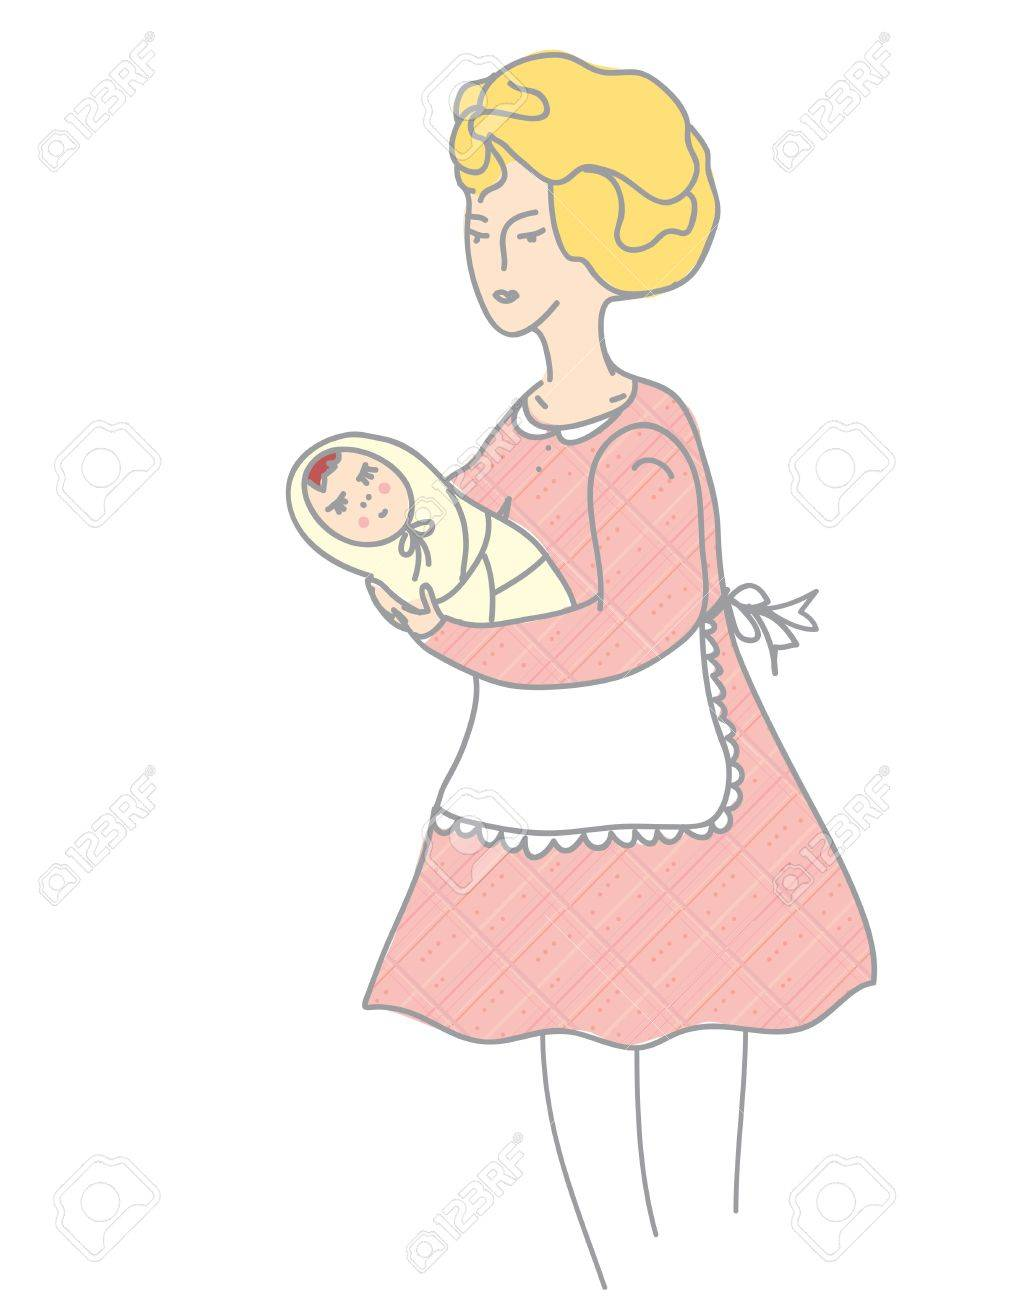 Mother and baby retro style illustration Stock Vector - 17260501